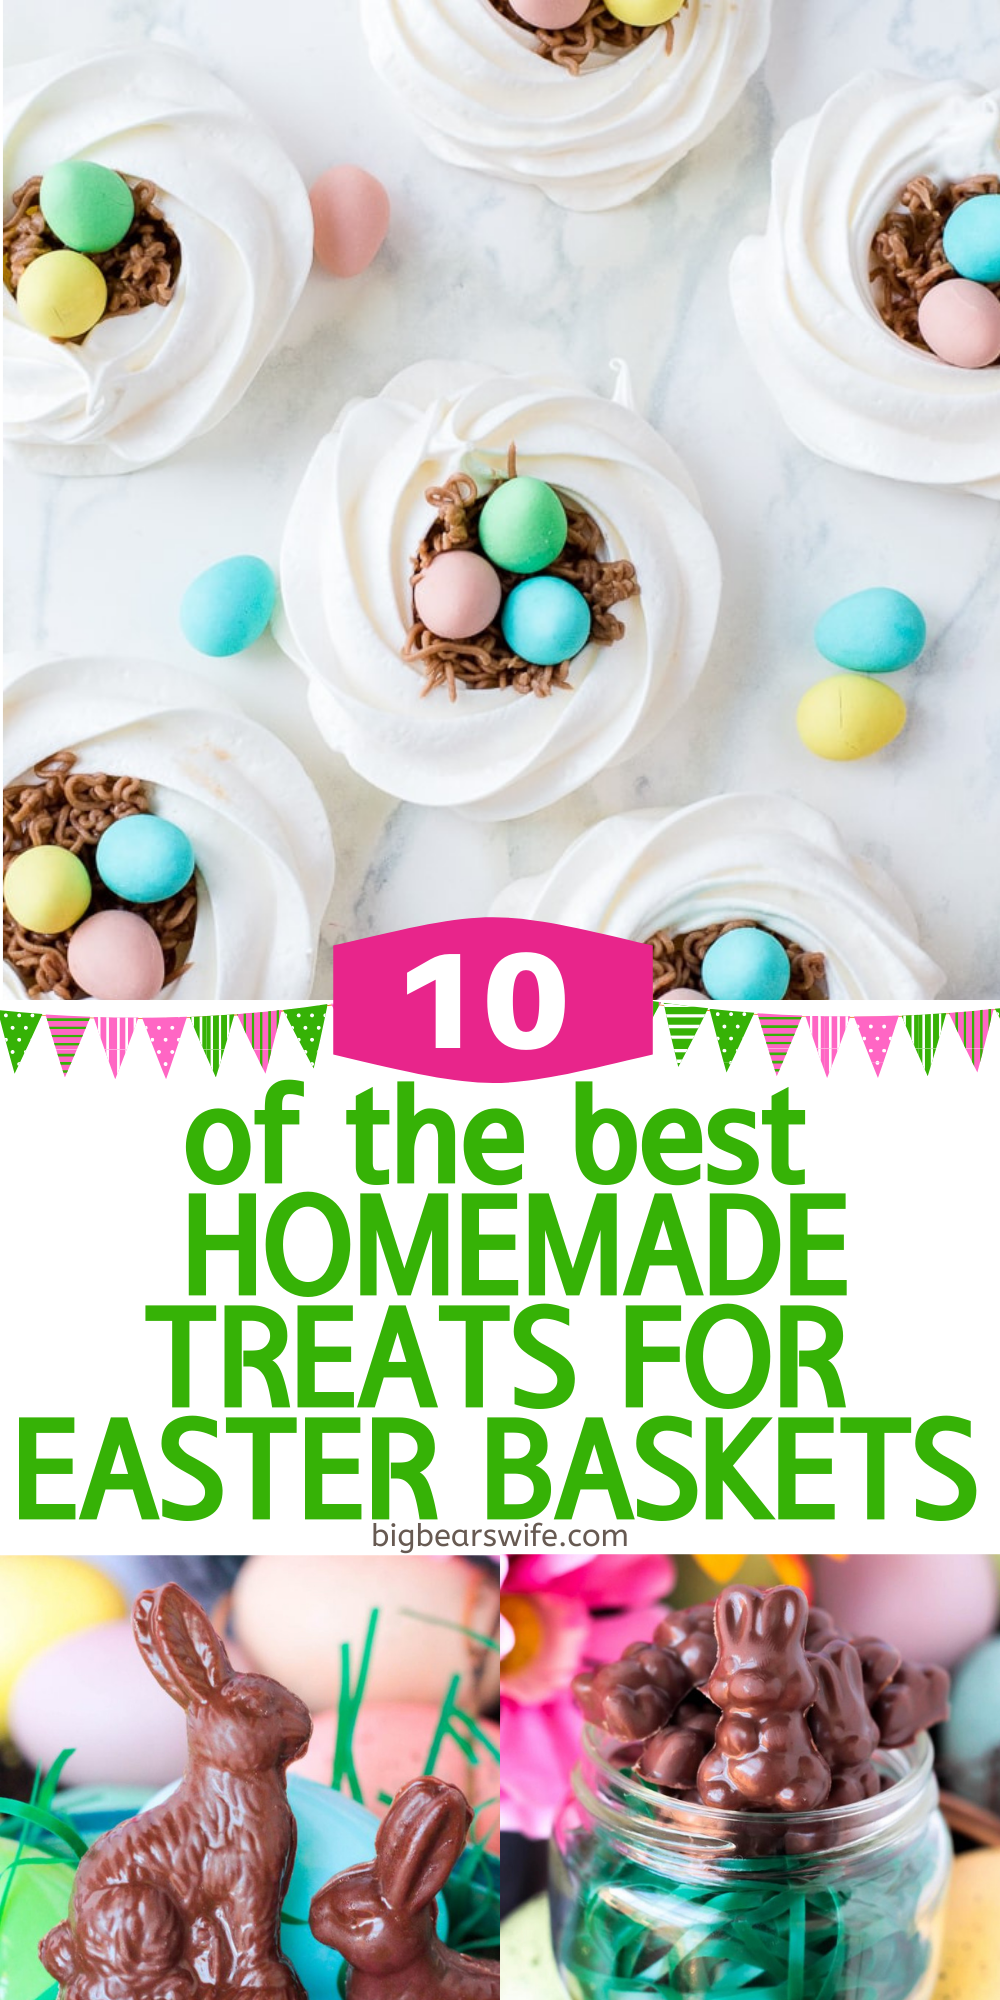 If you're filling Easter baskets for your kids or grandchildren this year or maybe just helping the Easter Bunny with some ideas, you'll love these Homemade Easter Basket treats! Sure, store bought Easter surprises are neat but homemade treats are even better! Fill your little one's Easter basket with 10 of the best Homemade Treats for Easter Baskets this year!    via @bigbearswife